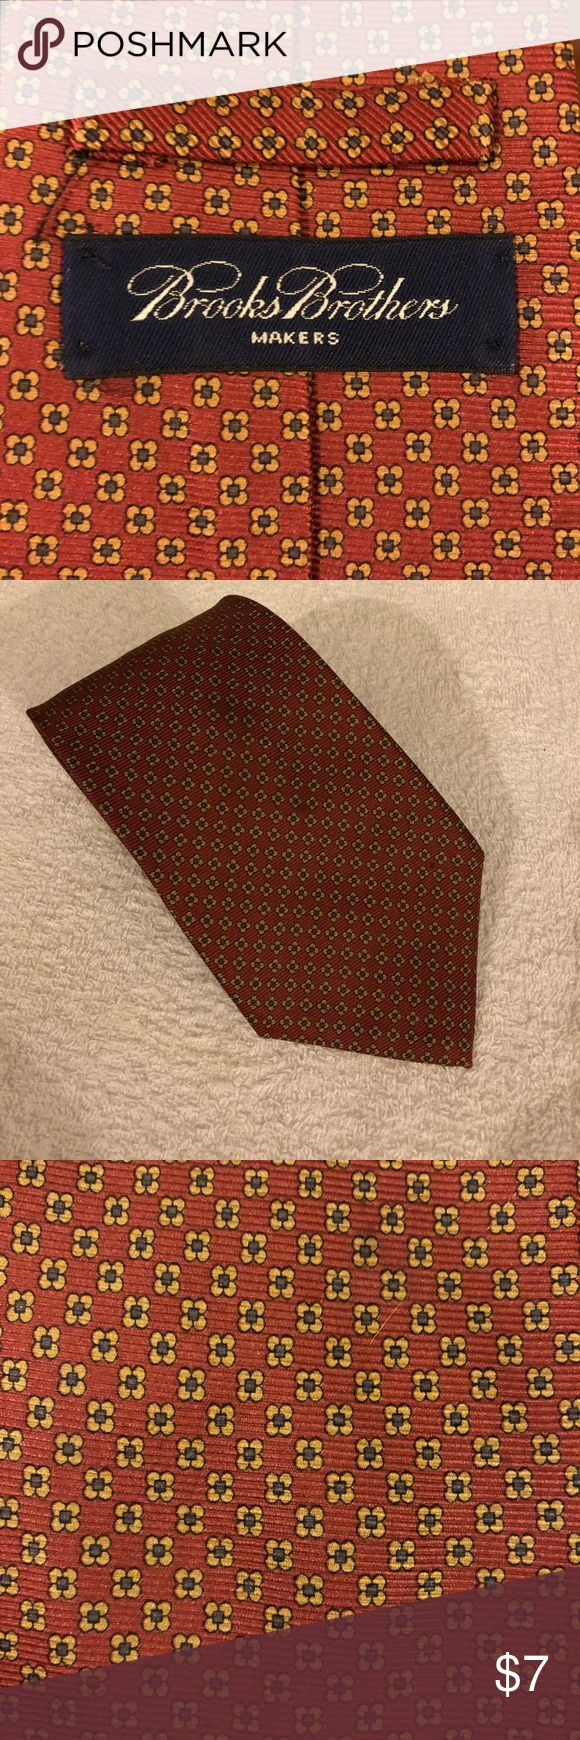 Brooks Brothers Brick Red w/ Tan & Navy Check Tie Brooks Brothers Brick Red with Tan and Navy Blue Check Silk Necktie! Great condition! Please make reasonable offers and bundle! Ask questions! Brooks Brothers Accessories Ties